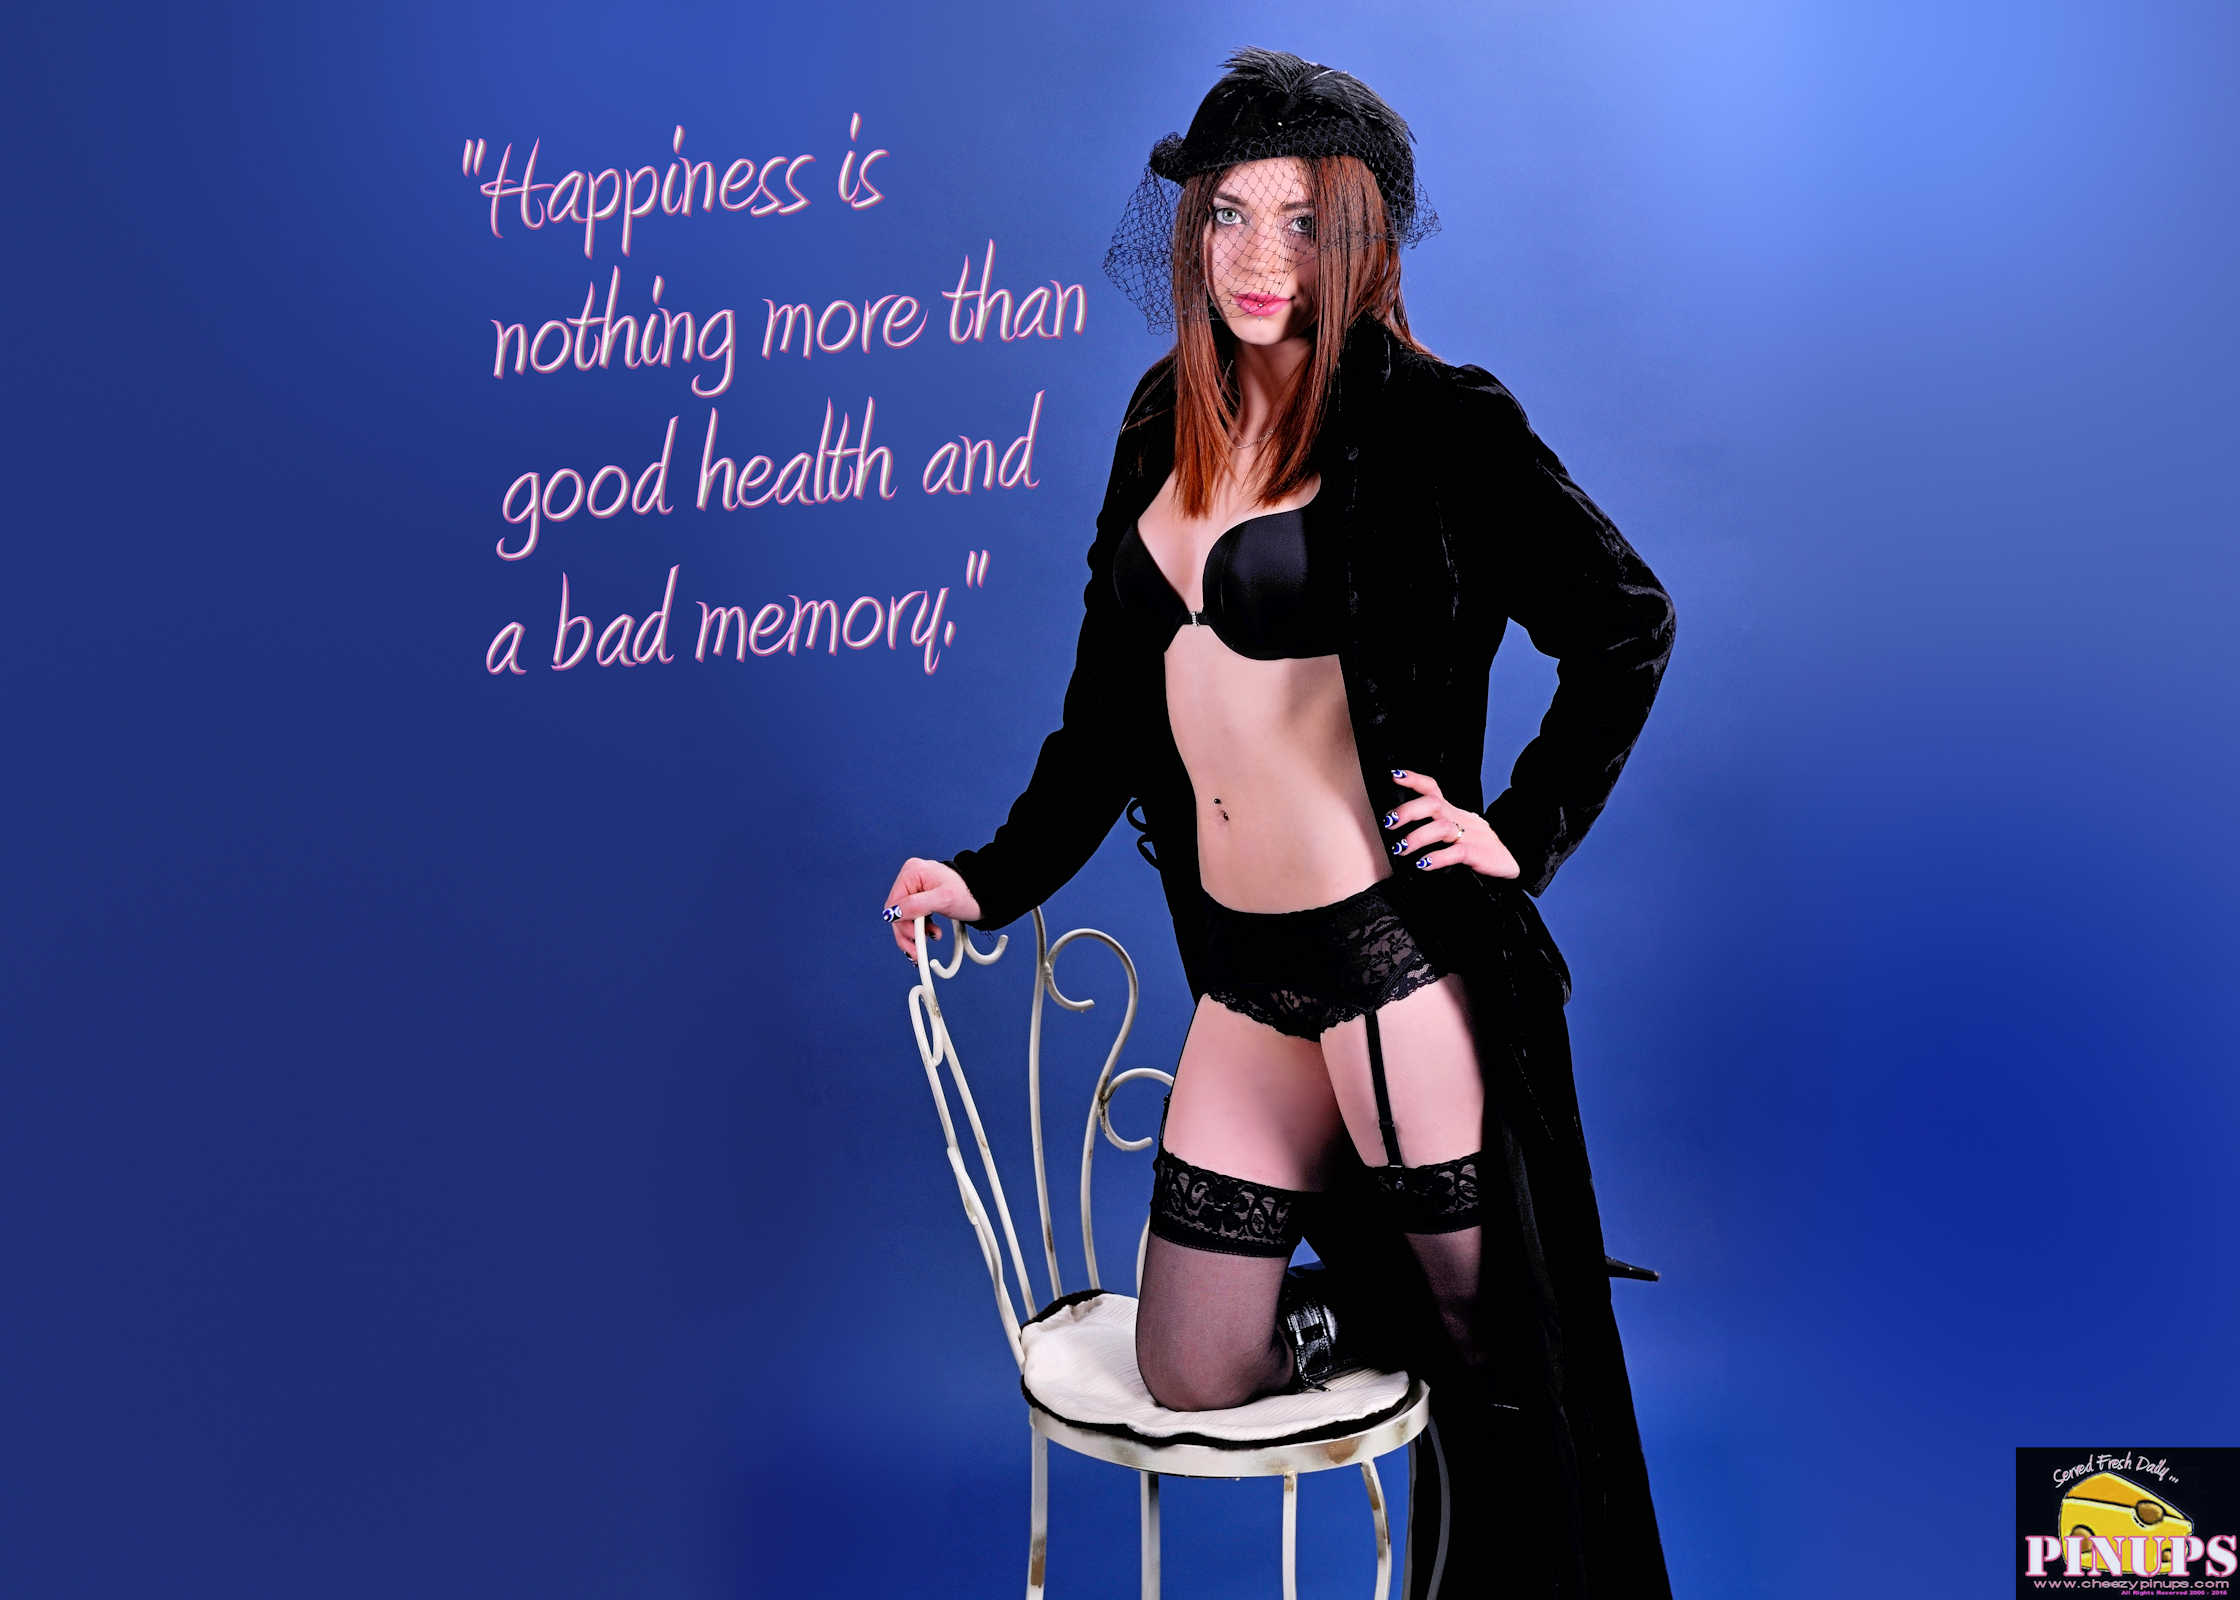 """Cheezy Pinup - January 14, 2018 """"Happiness is nothing more than good health and a bad memory."""" - Albert Schweitzer Model : Meagan"""